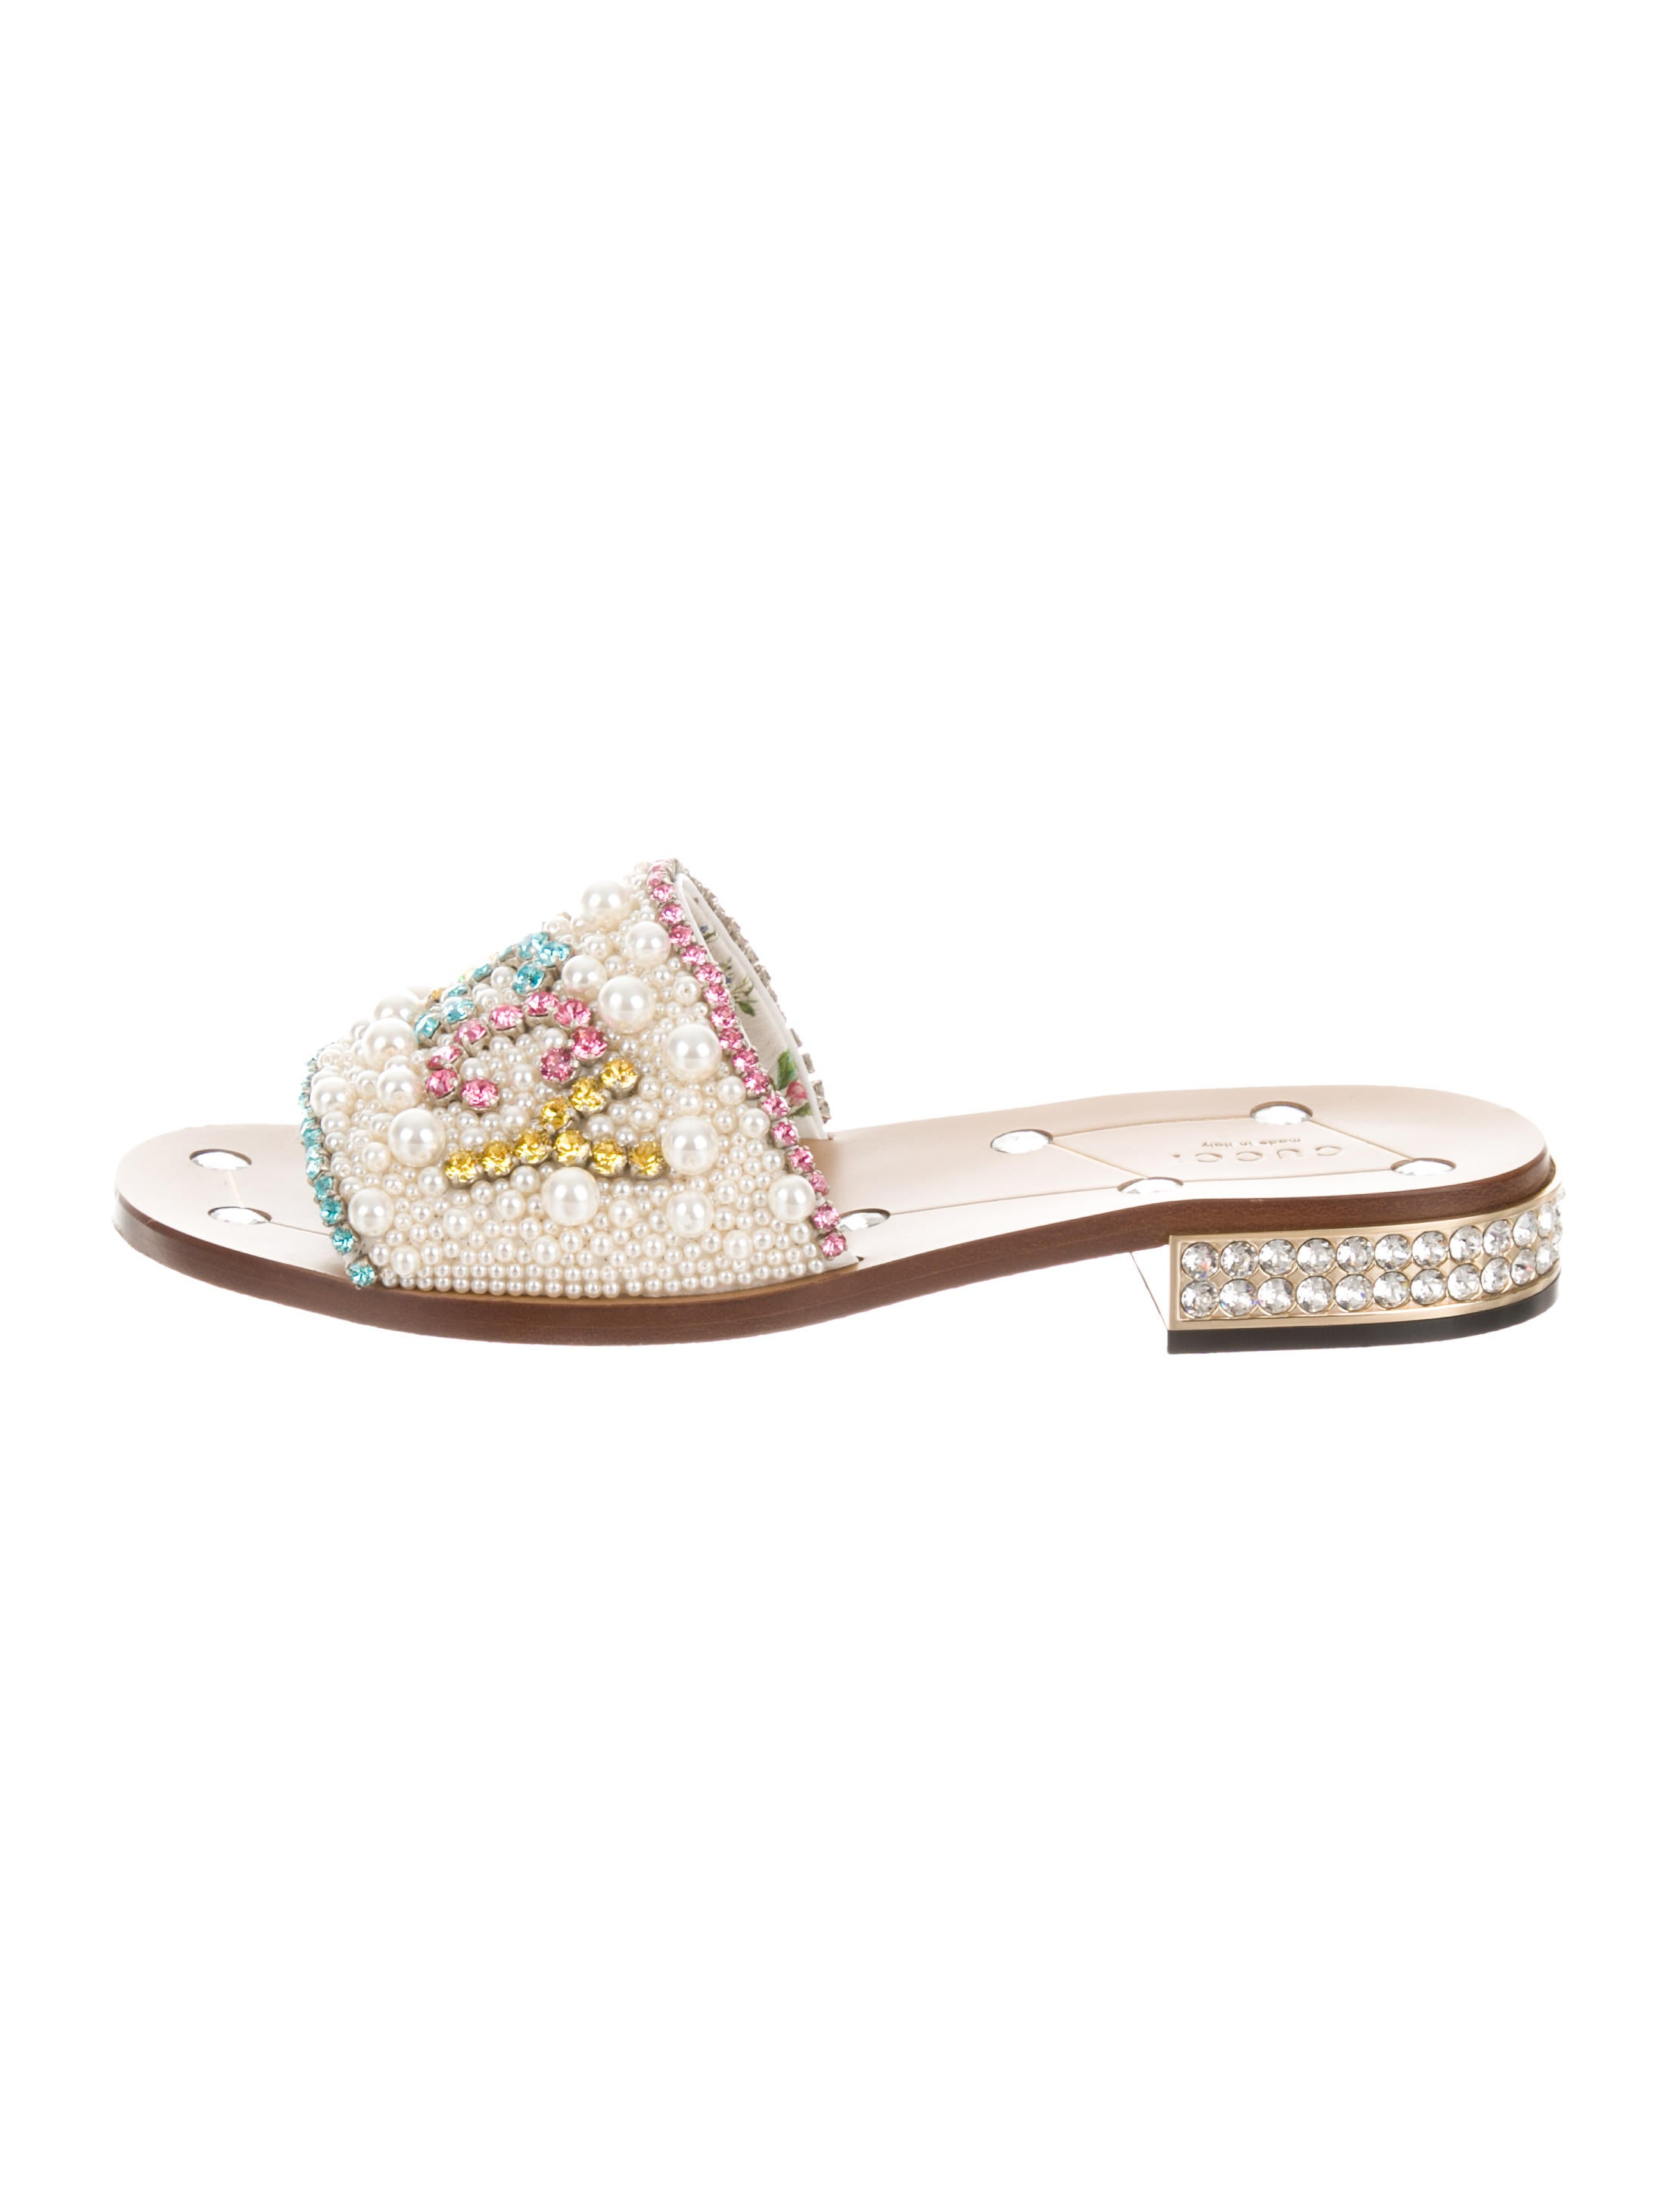 30c72560354f Gucci 2018 Faux-Pearl Guccy Sandals - Shoes - GUC231016